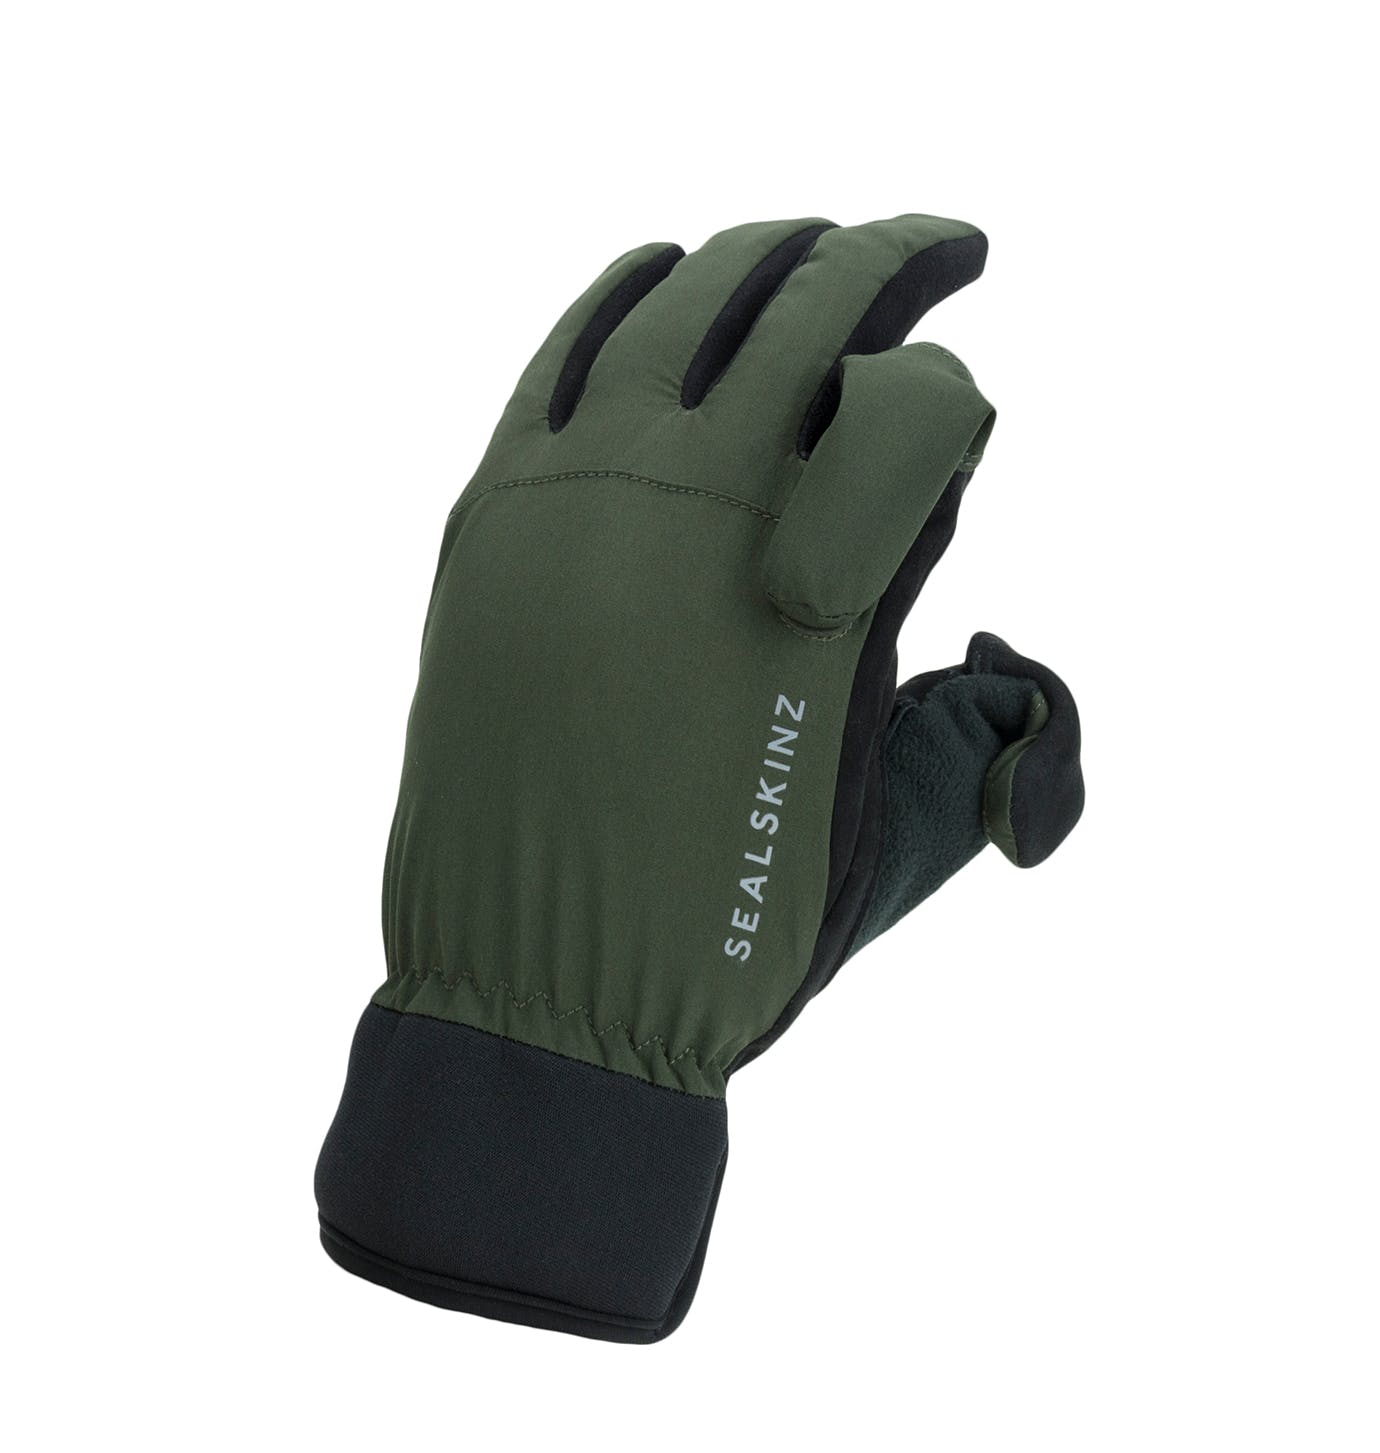 Waterproof Sporting Gloves